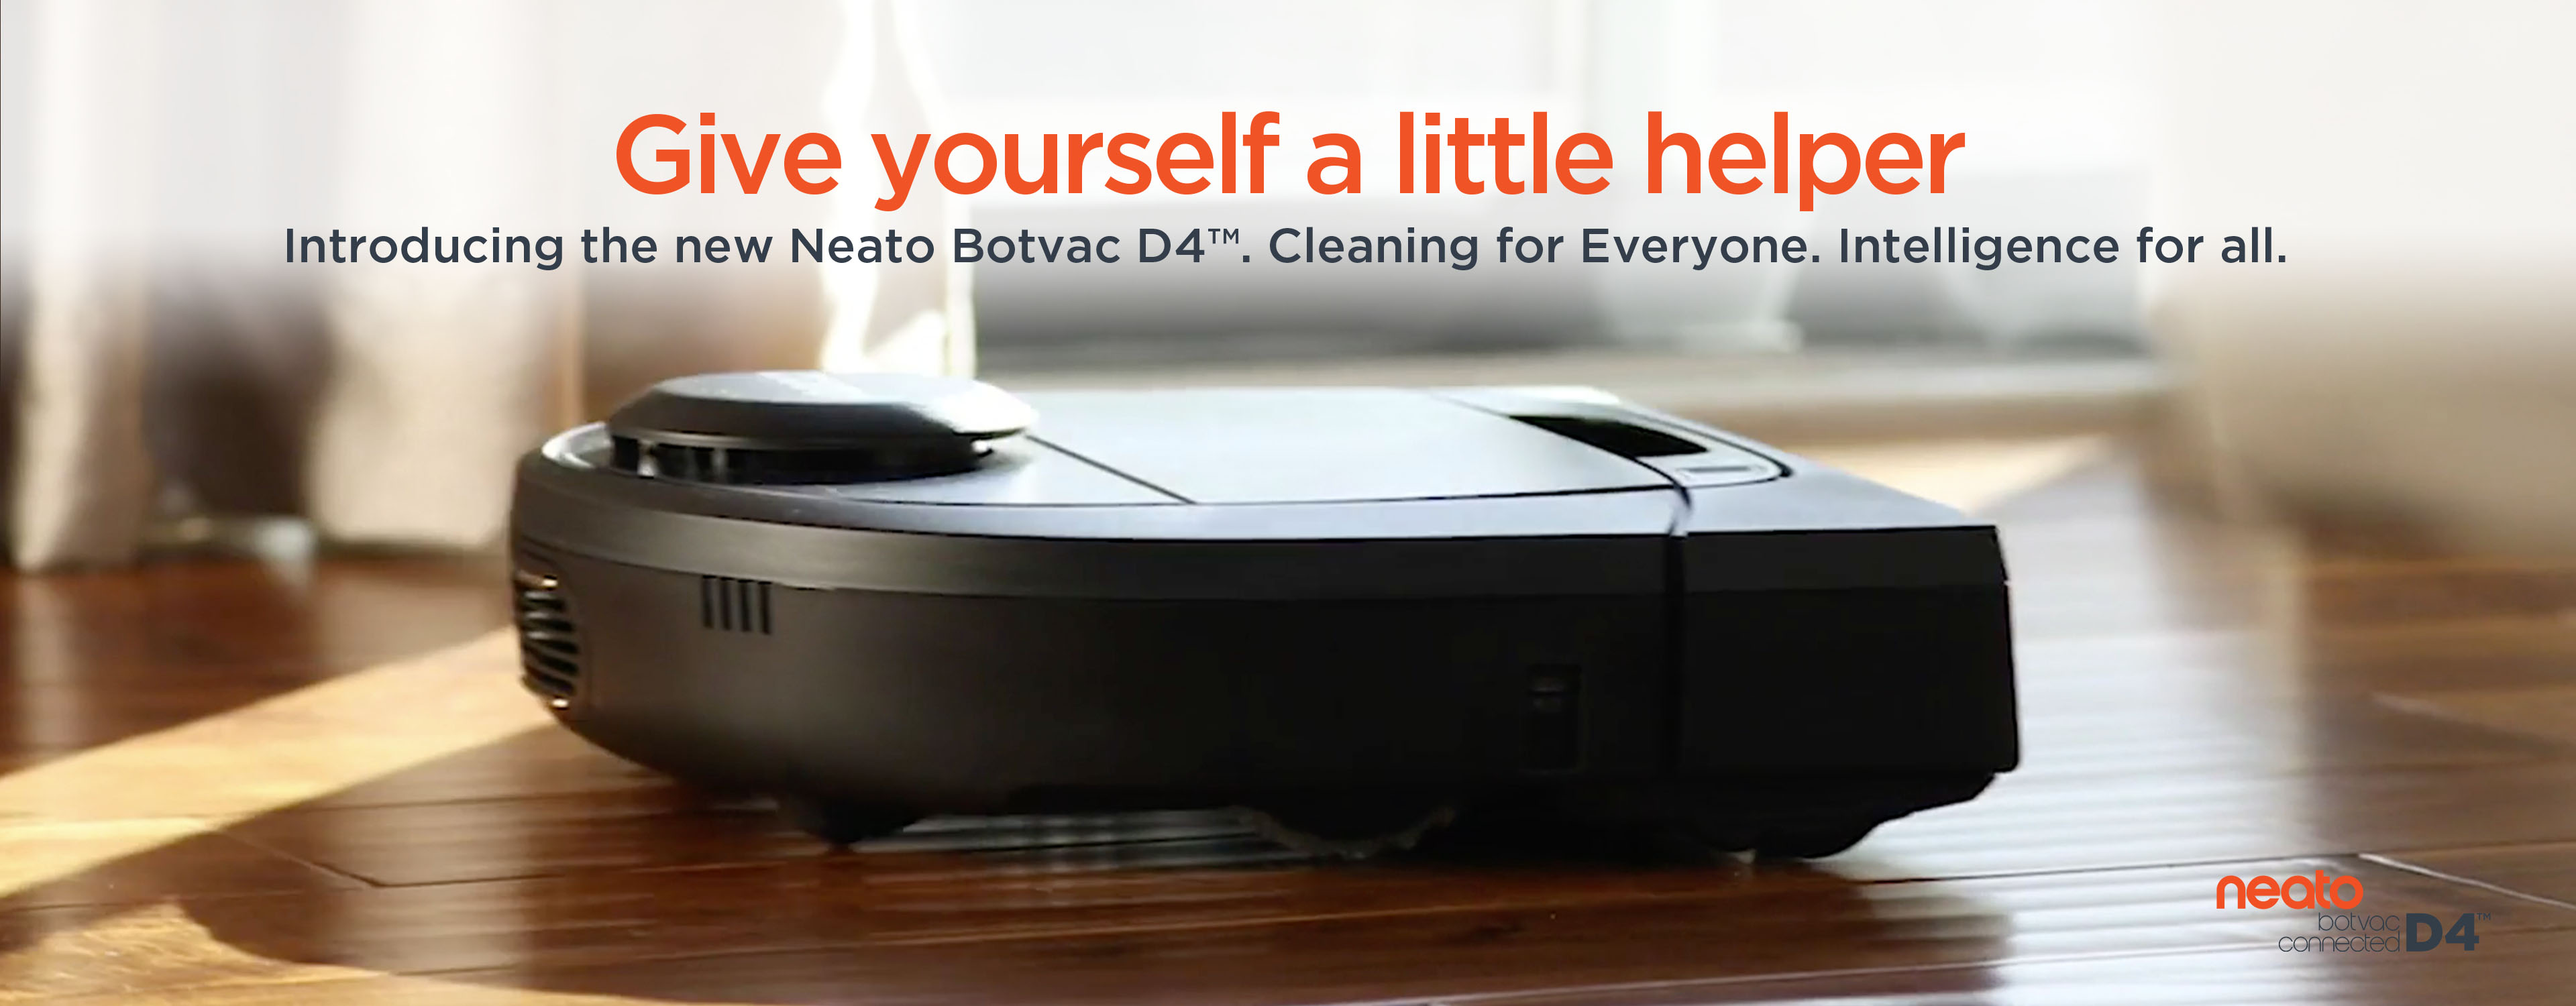 Introducing Neato Botvac D4 Connected